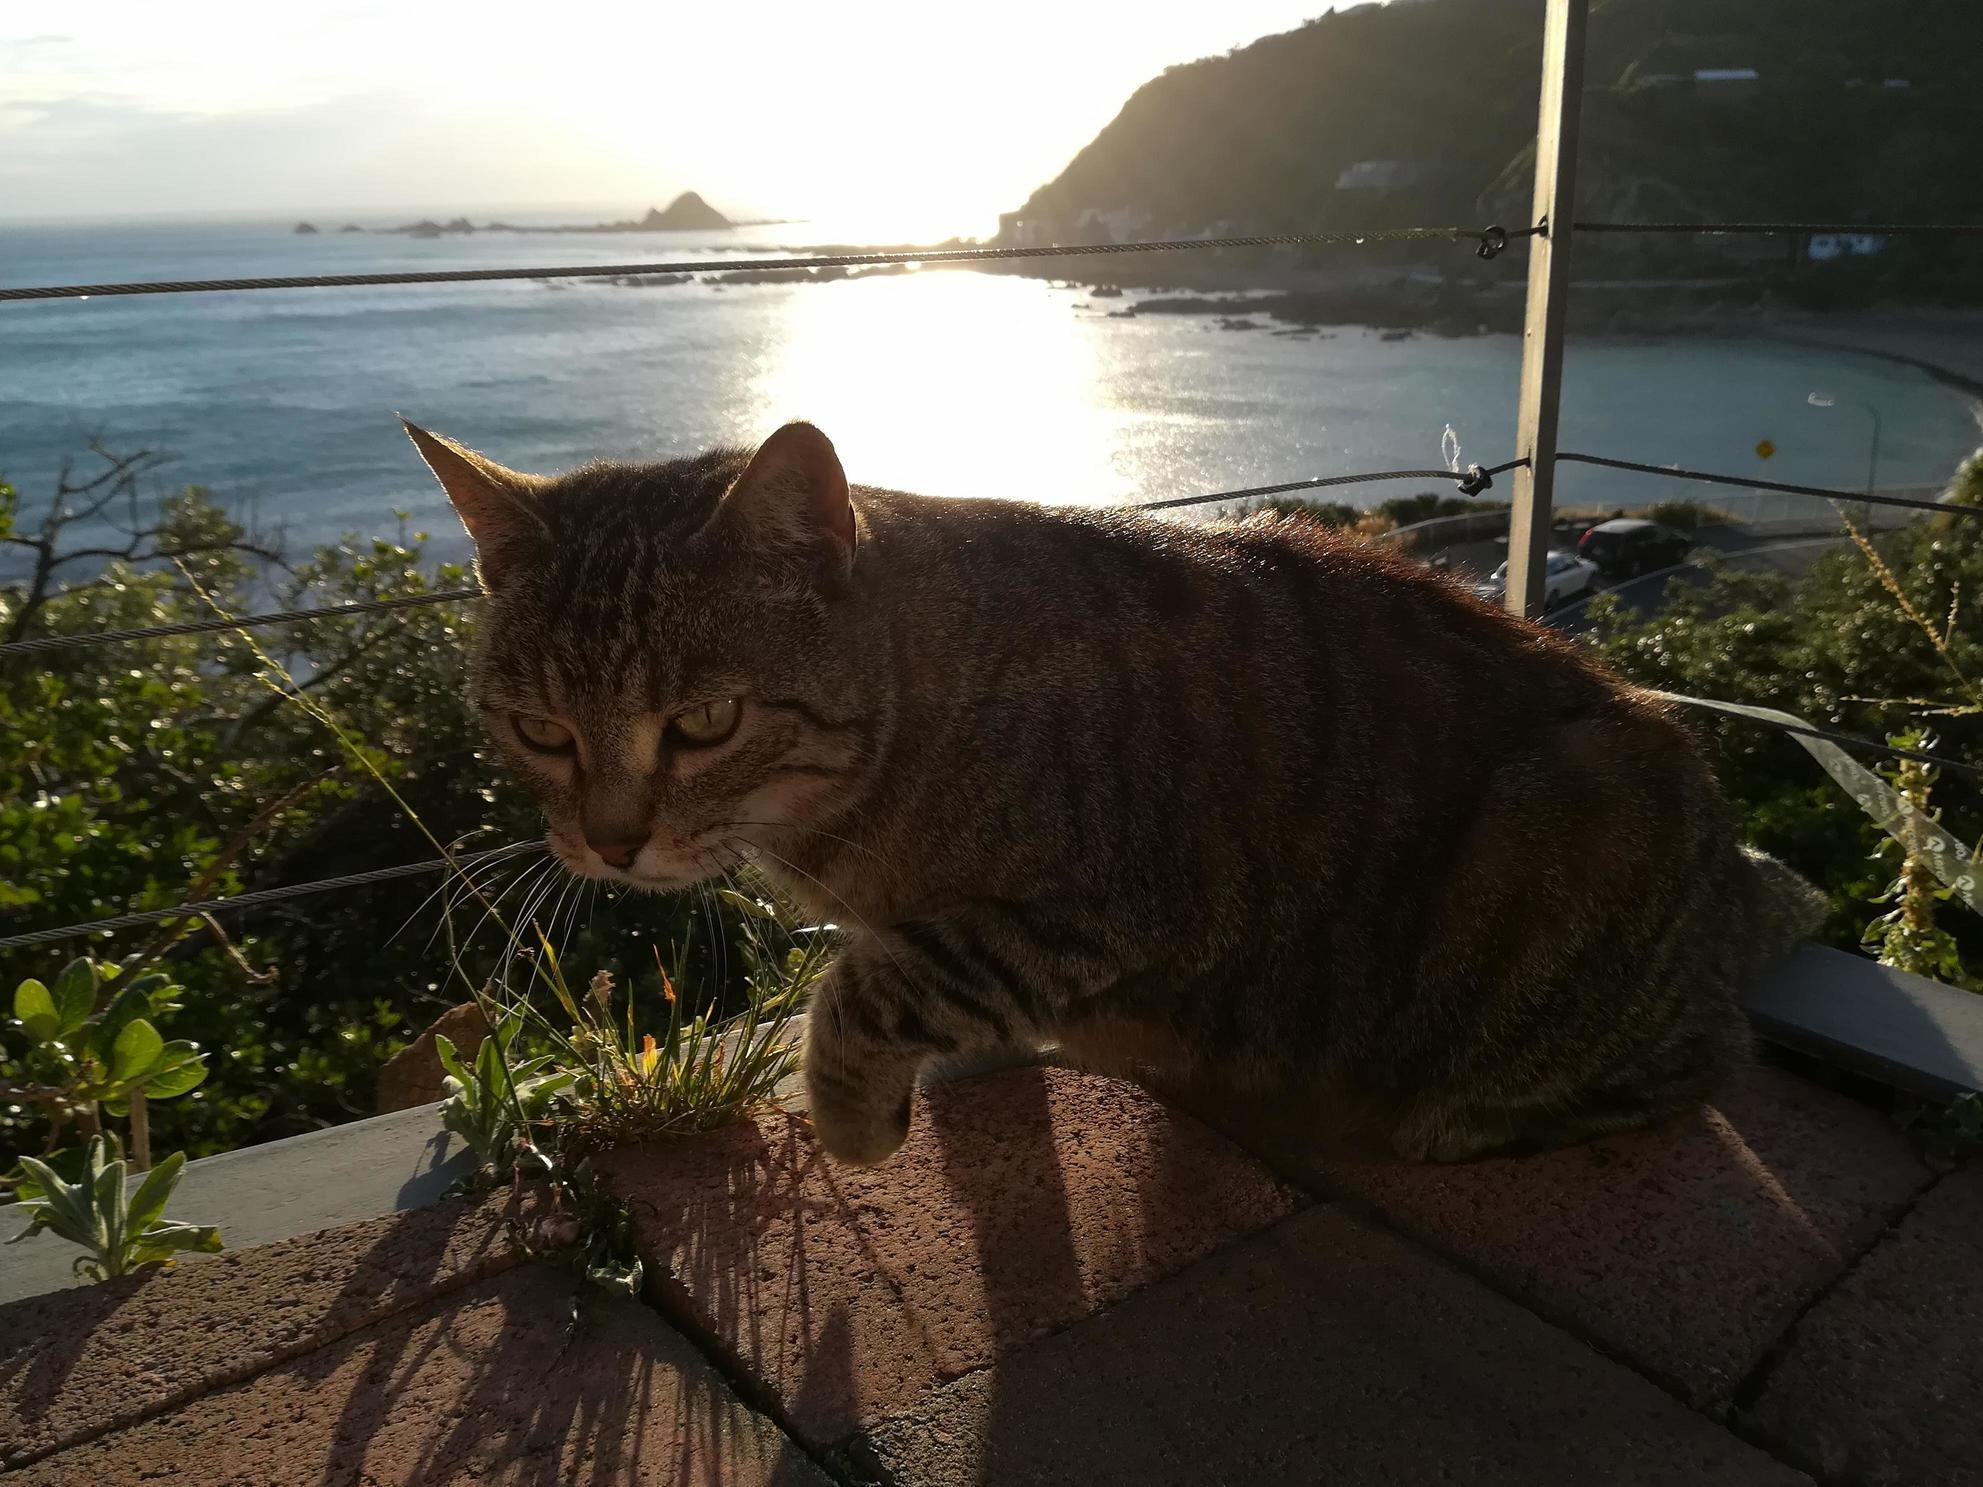 I met a new cat at our staff dinner – super cuddly and photogenic.